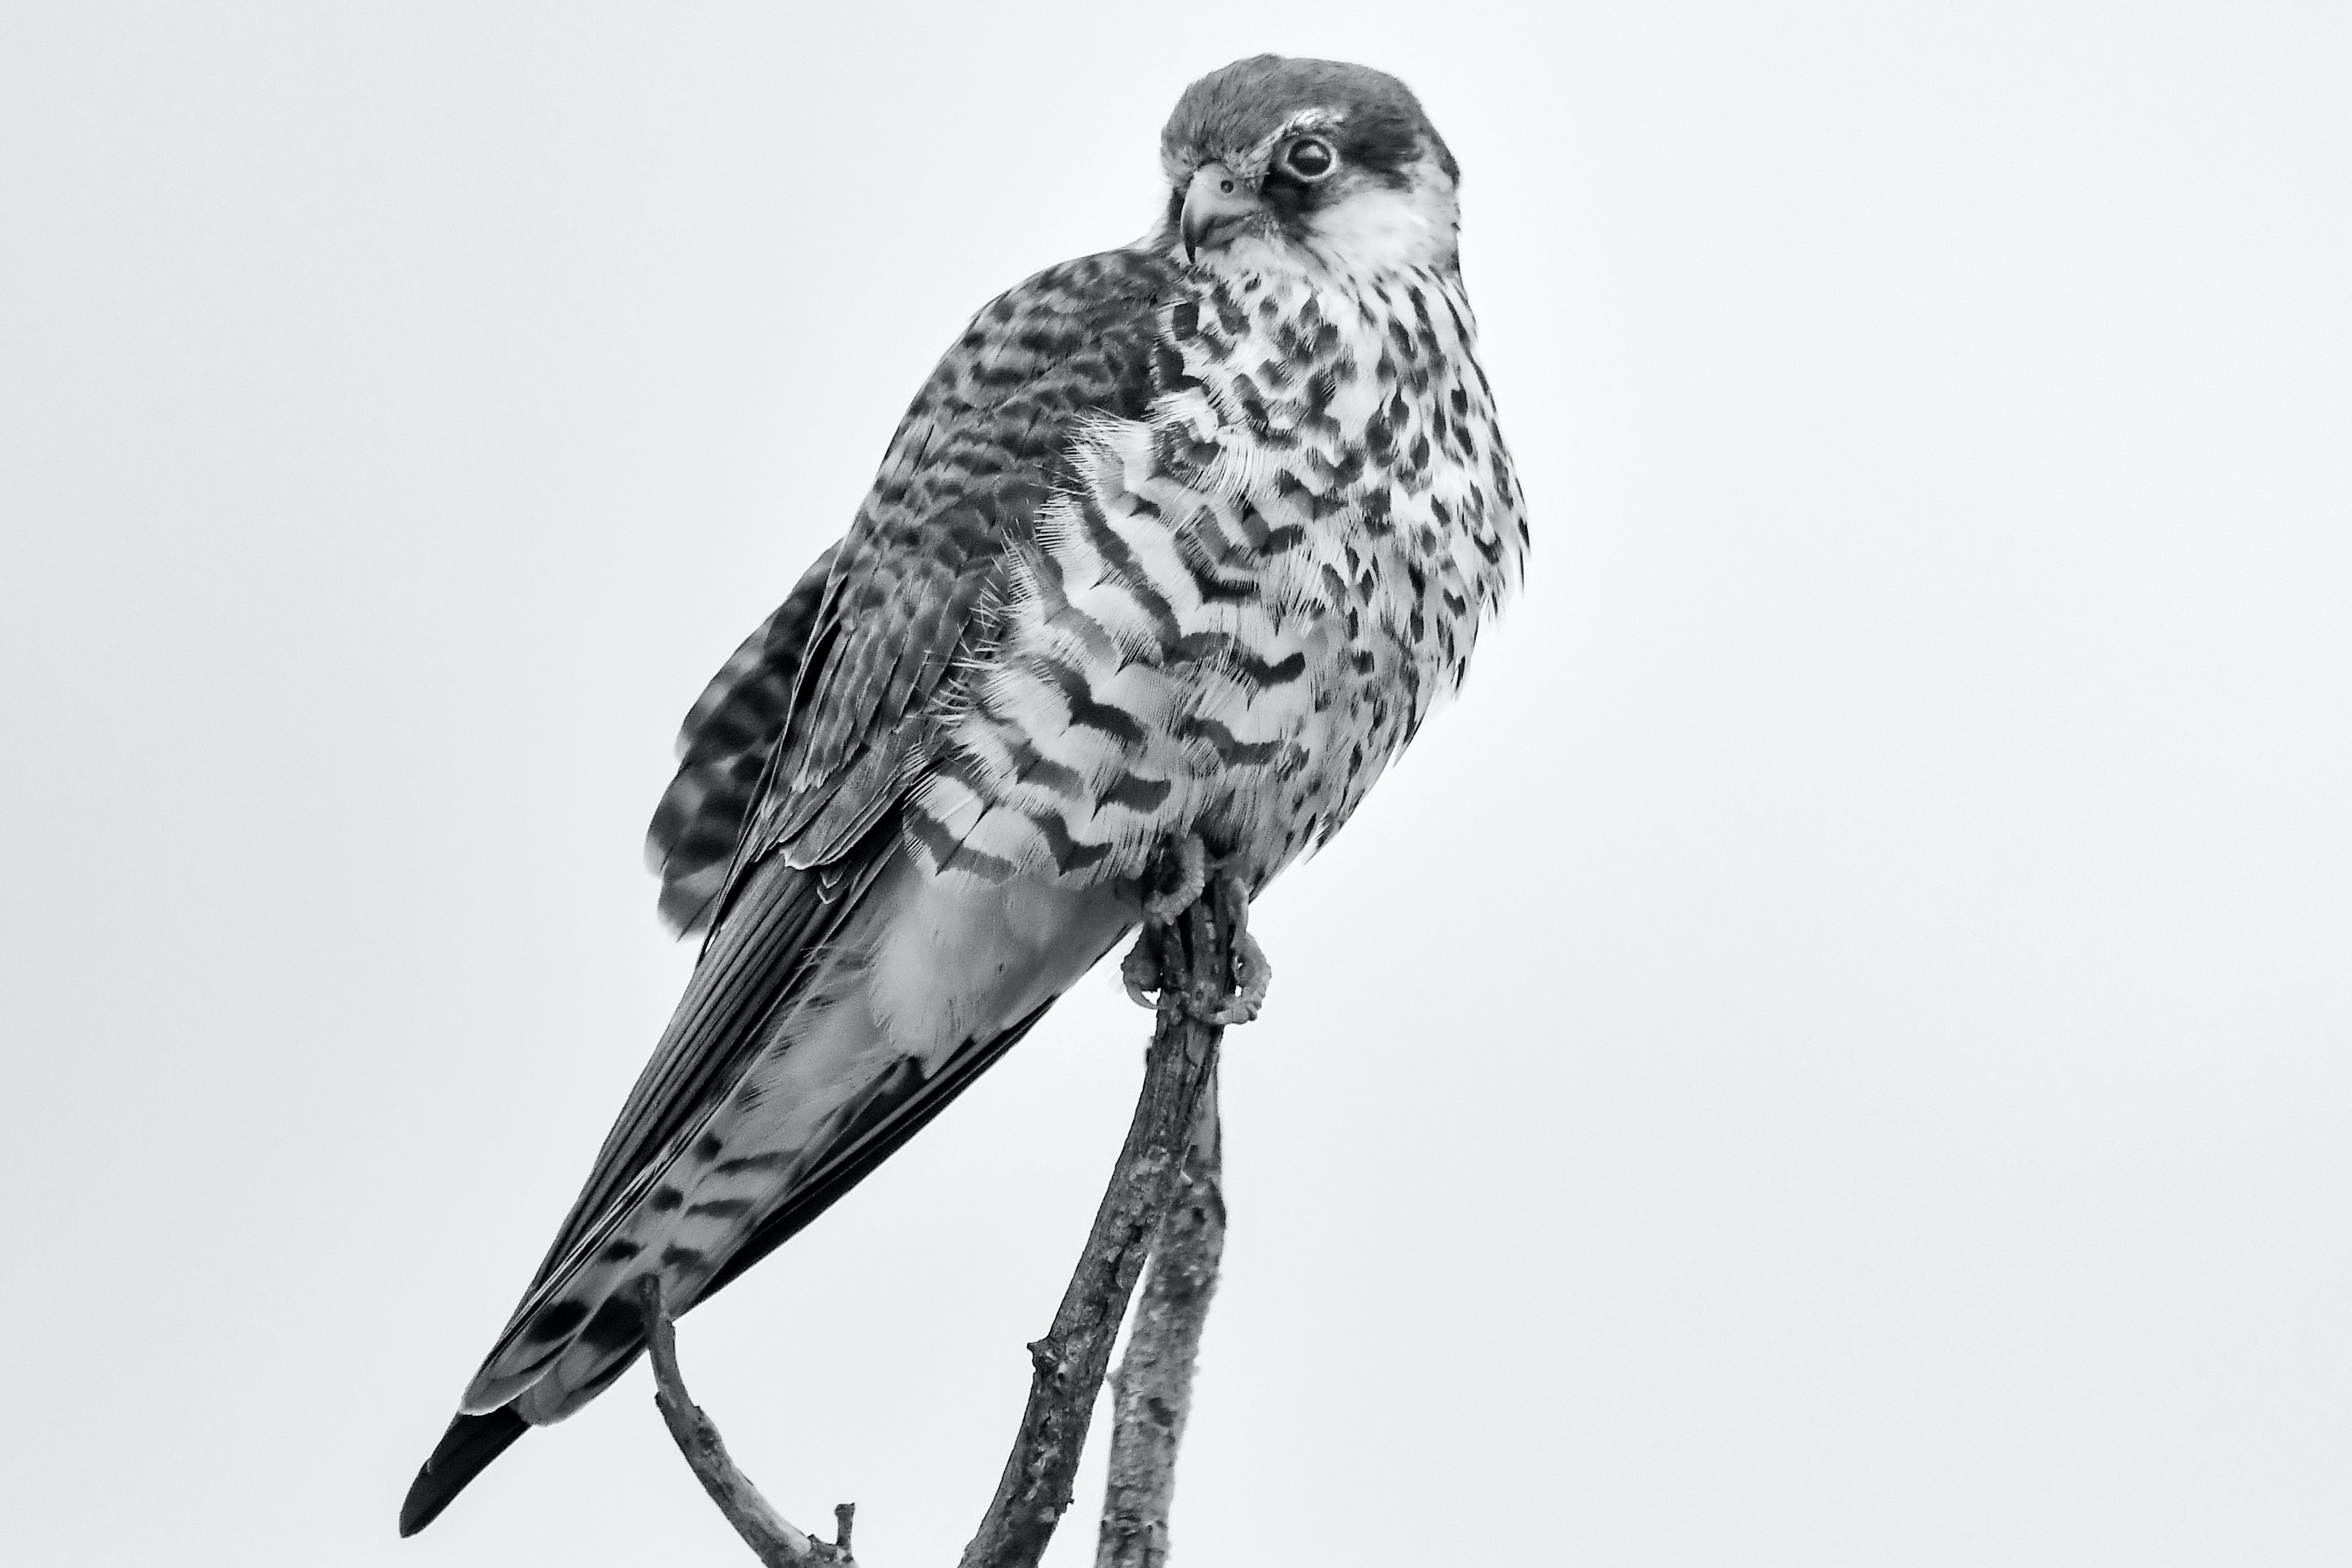 Grayscale Photography of Falcon Perching on Branch